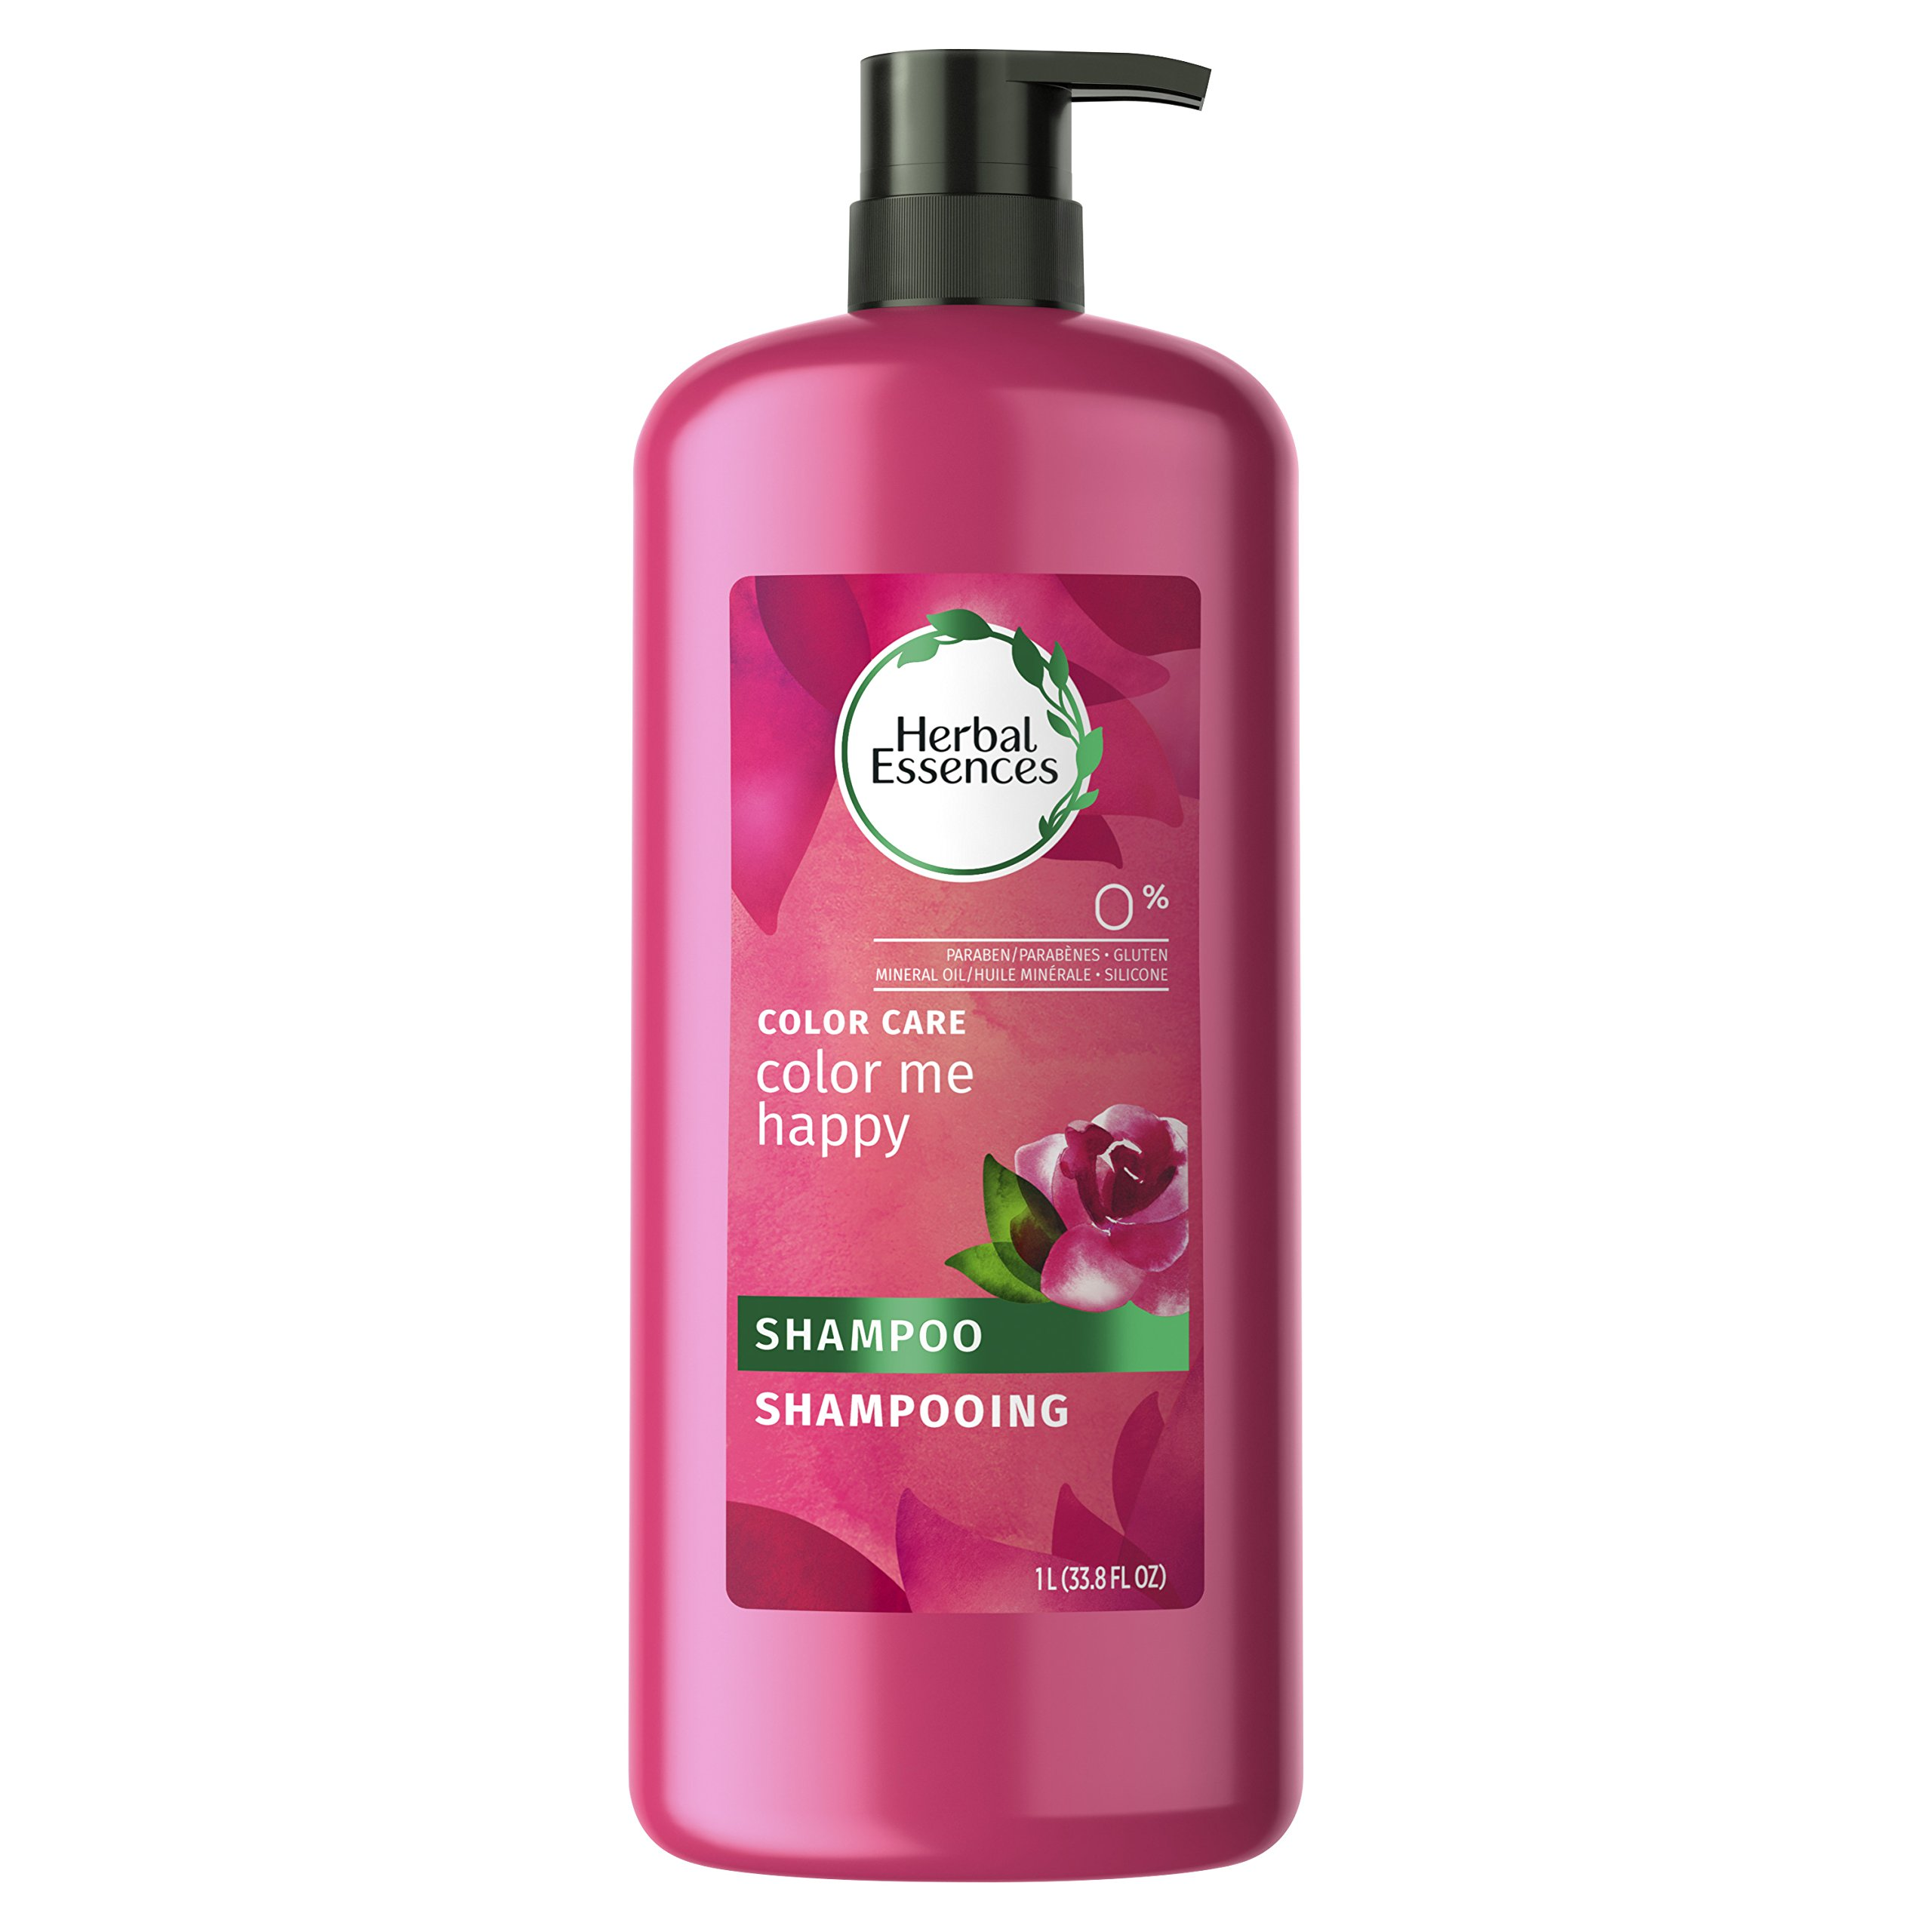 Herbal Essences Shampoo Color Treated Packaging